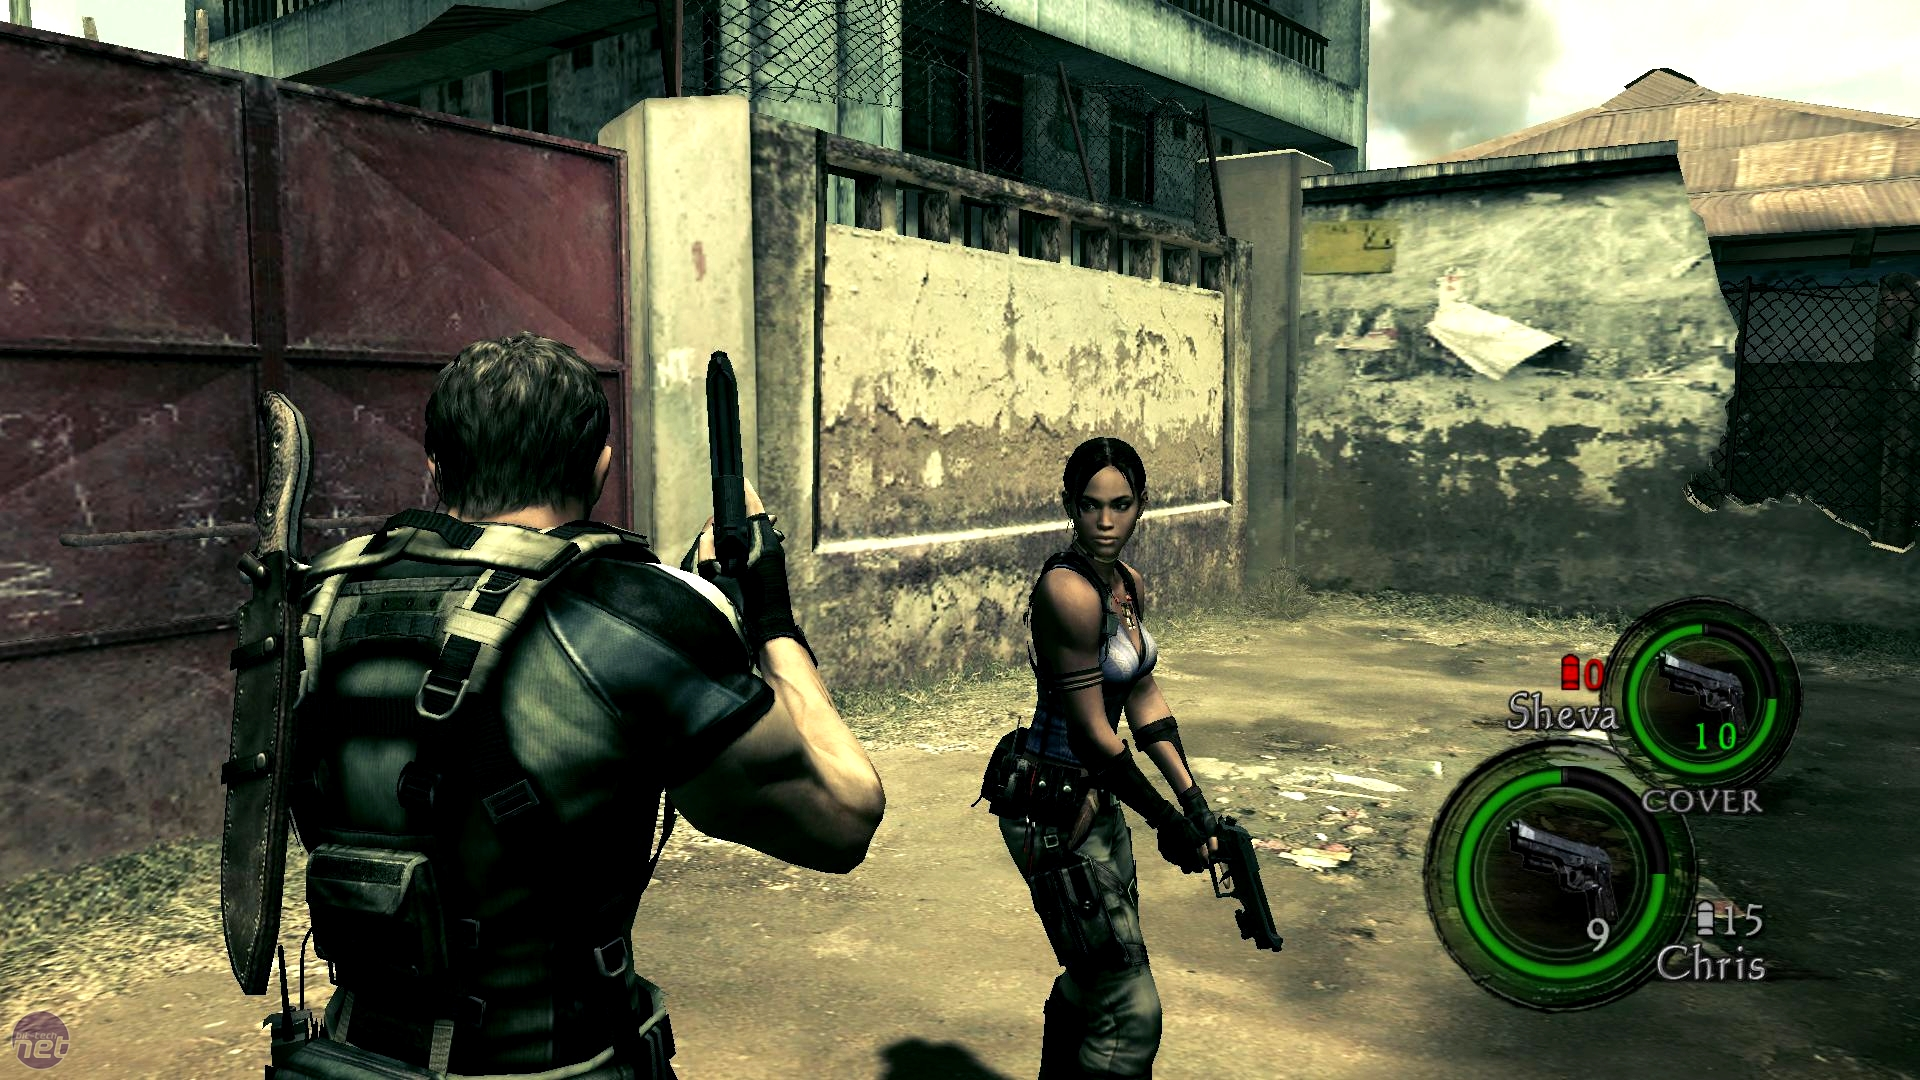 Resident Evil 5 PC Review | bit-tech net